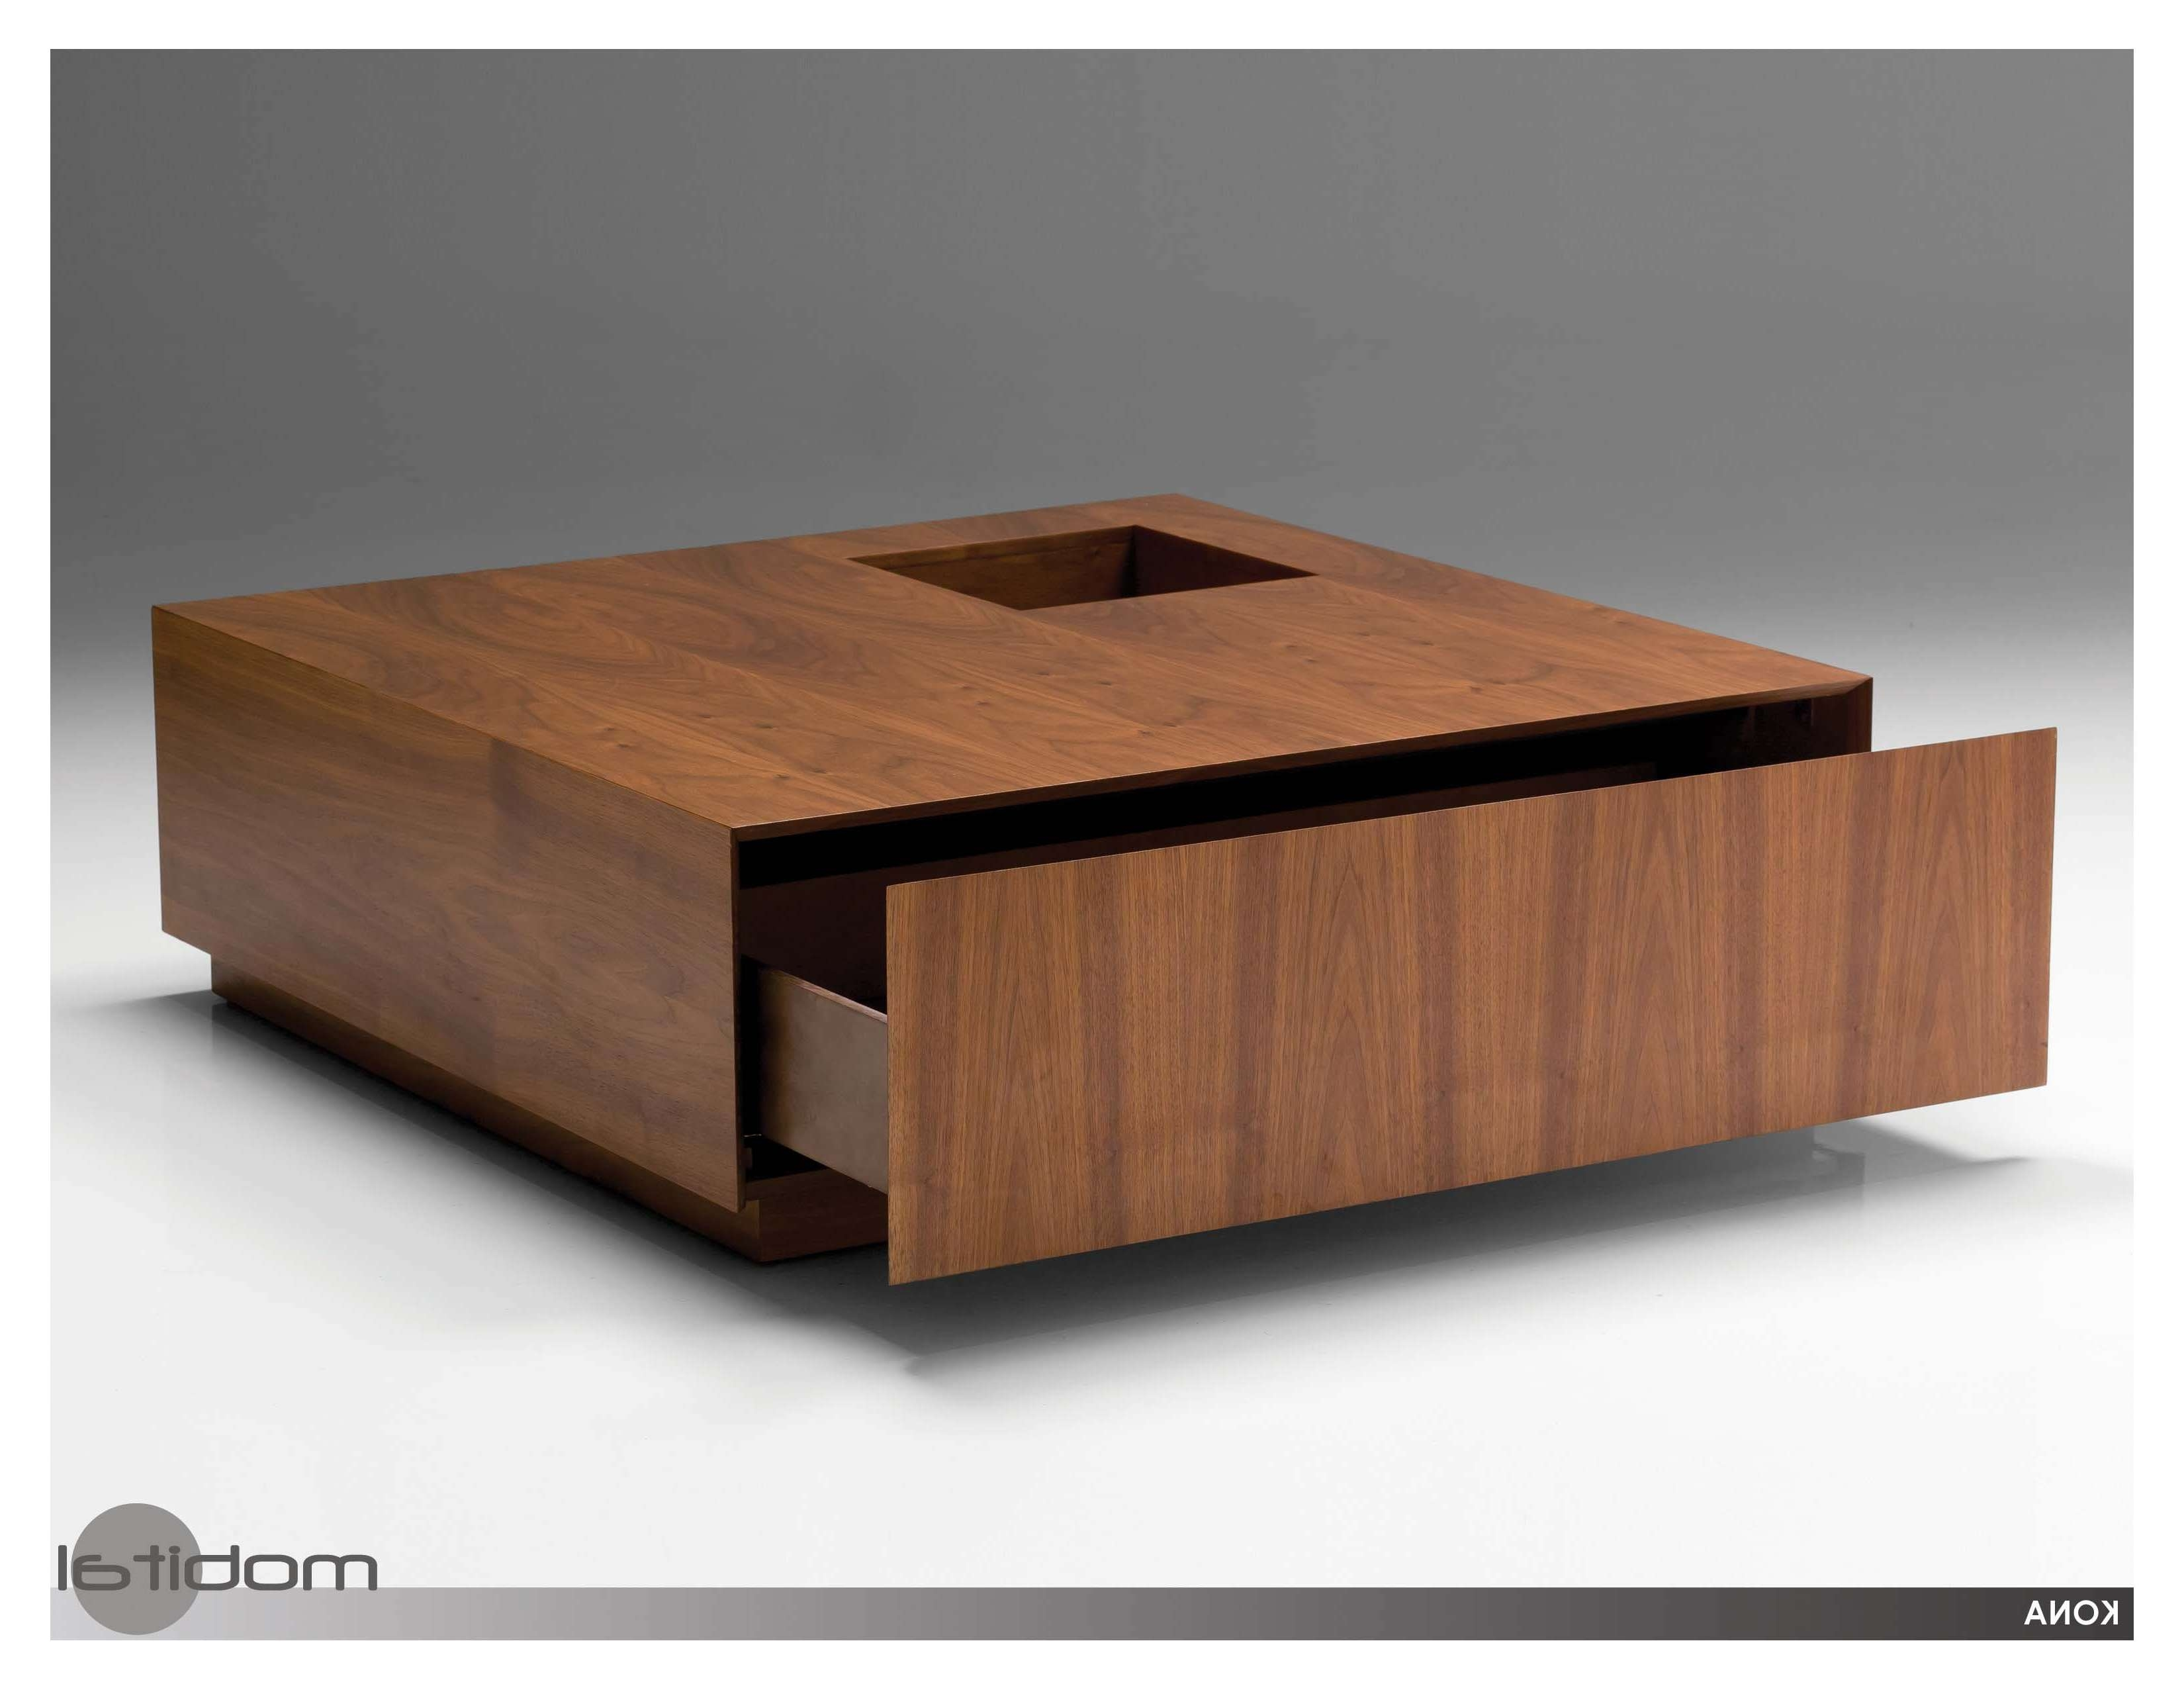 Coffee Tables : Cocktail Tables For Sale Large Side Table Granite Intended For Most Up To Date Square Coffee Tables With Storages (View 7 of 20)